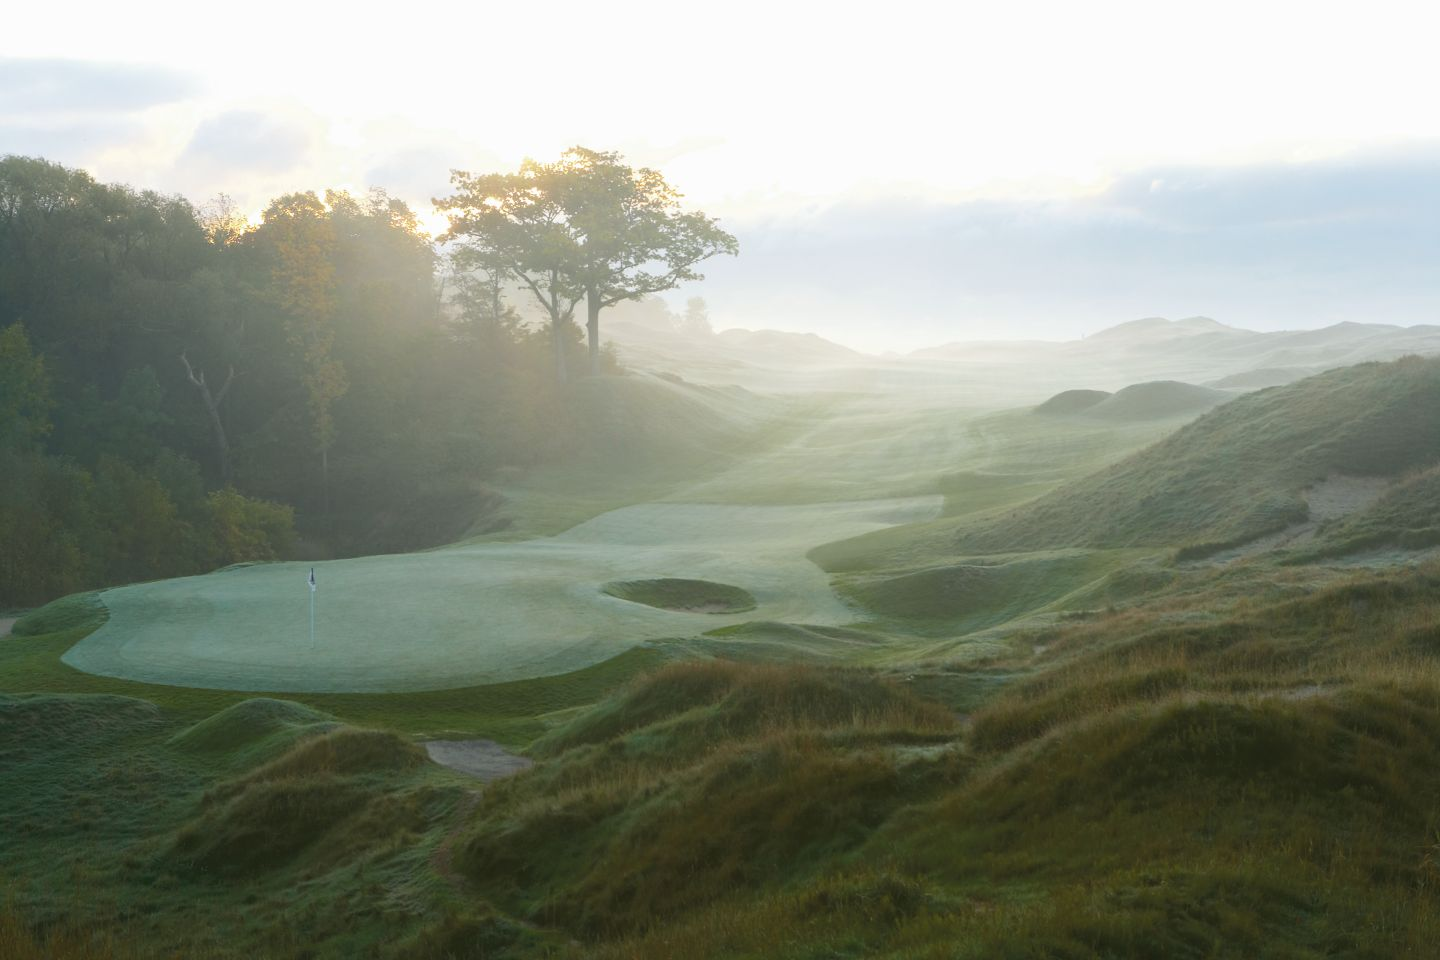 The green of the ninth hole on the Straits Course at Whistling Straits with fog.